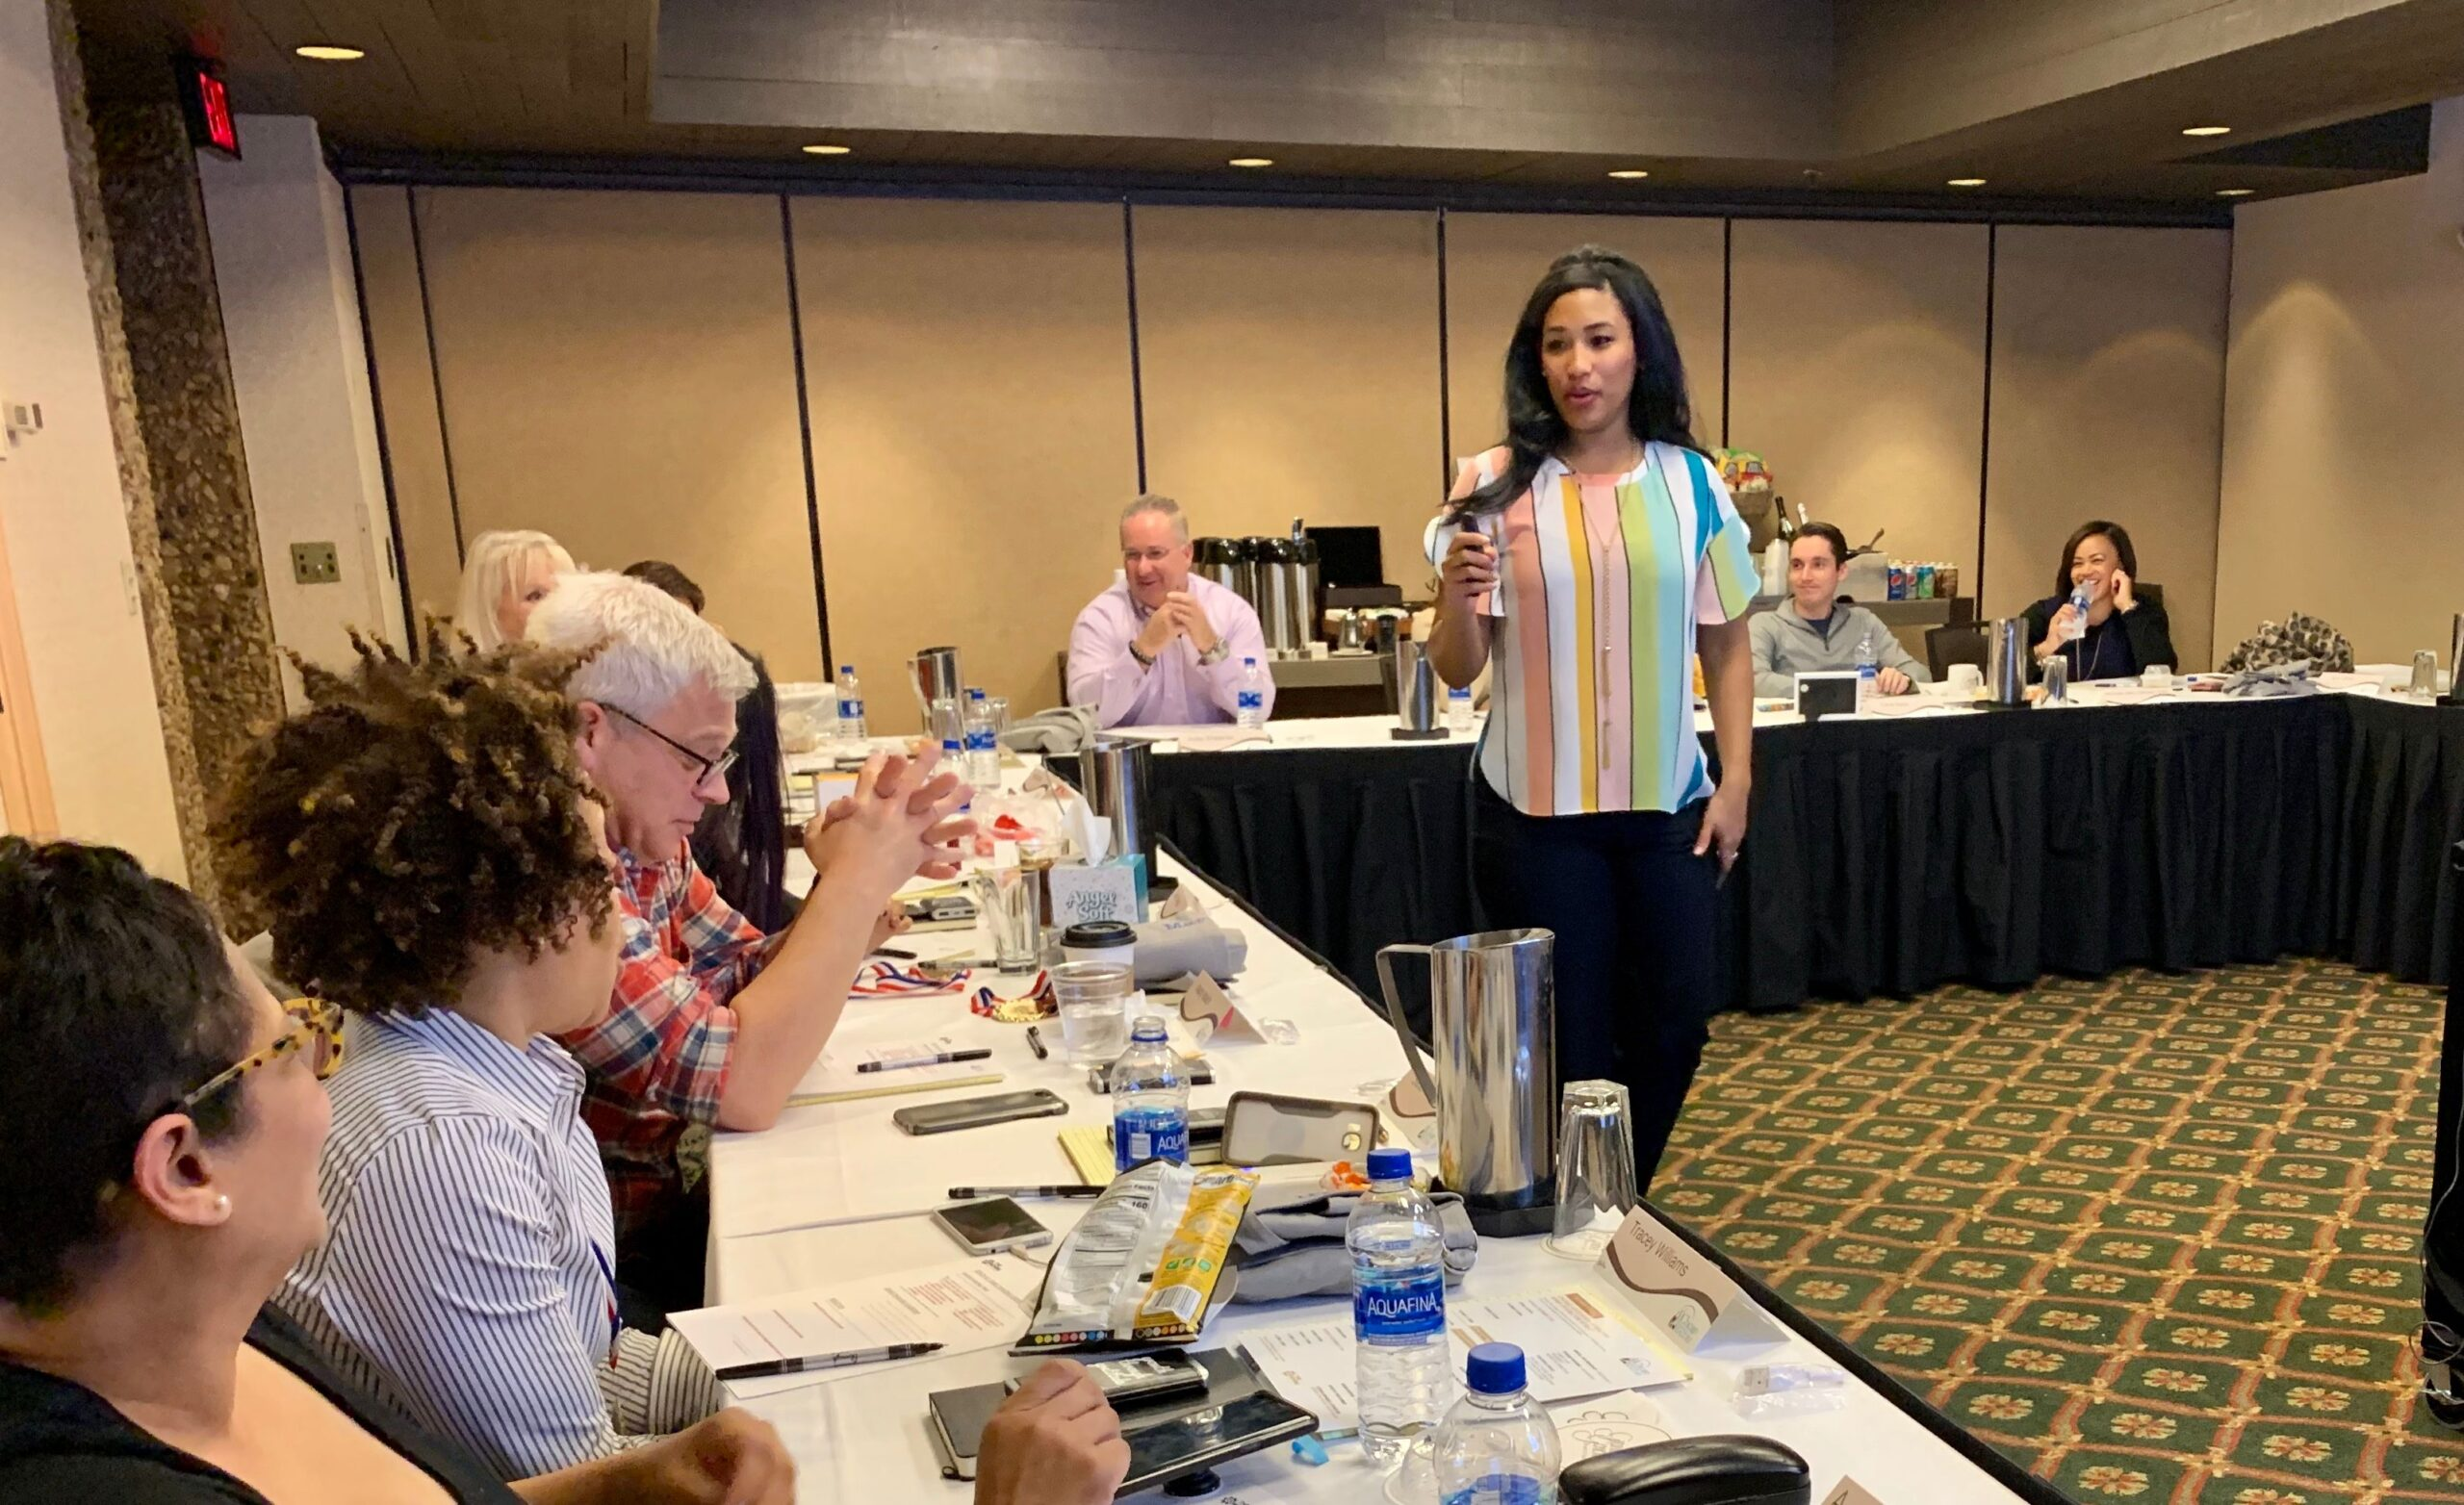 Hayes leads a custom Board of Directors Advance for the Chicago Association of Realtors.